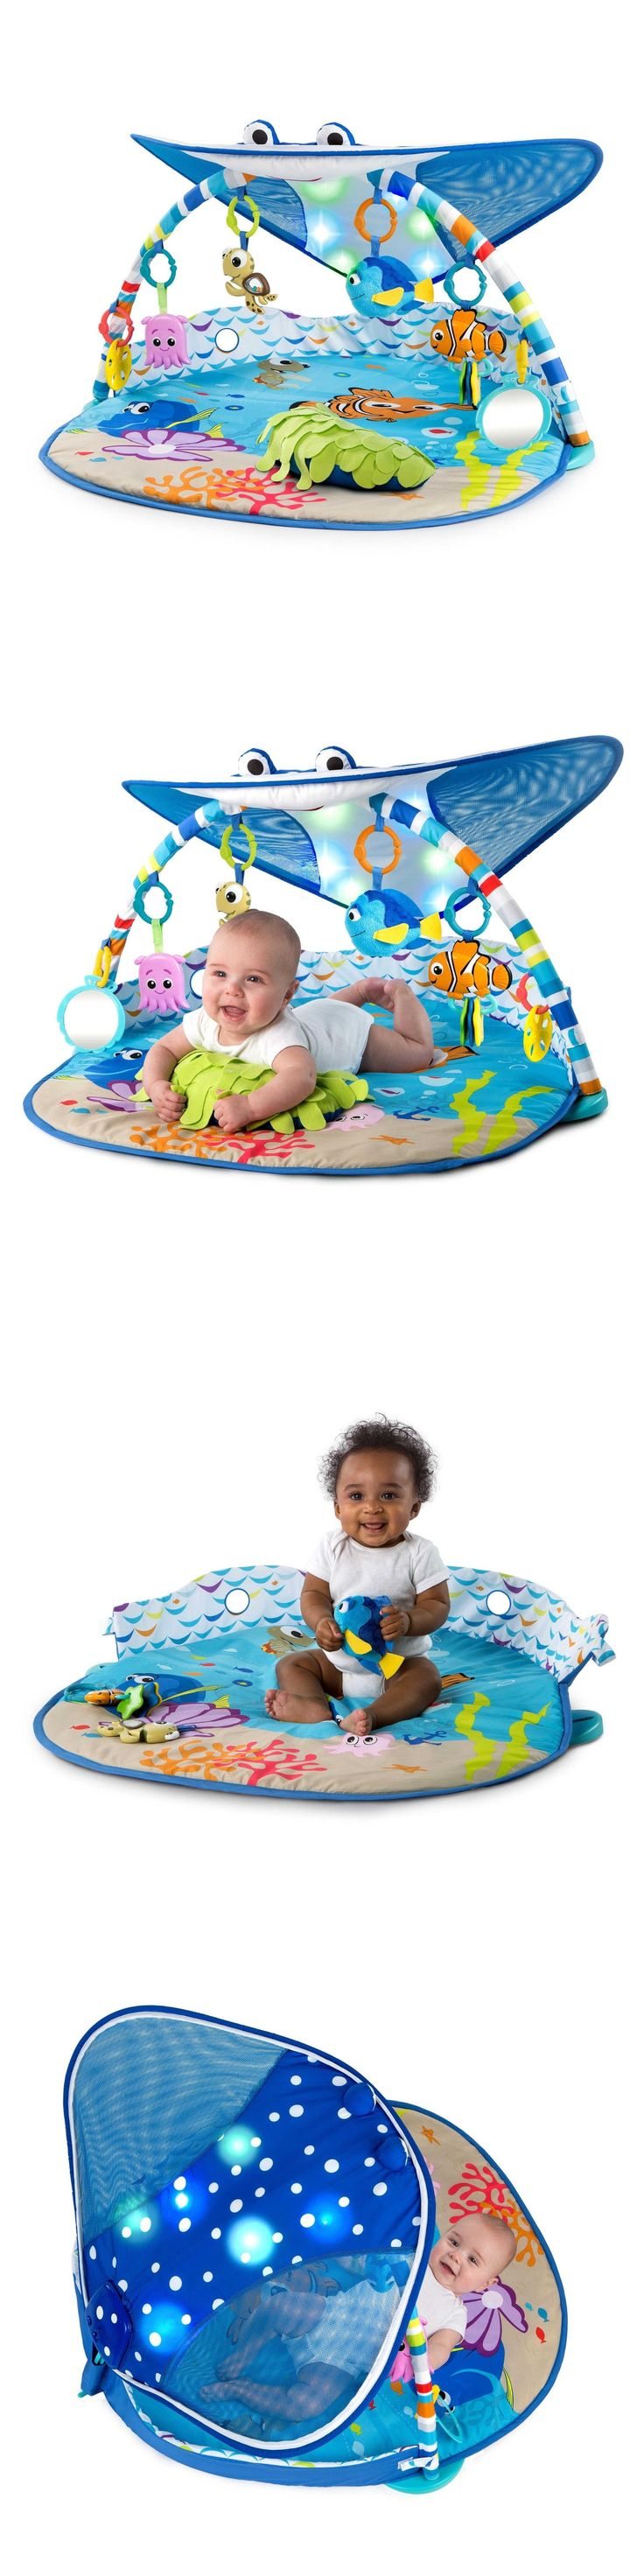 Baby Gyms and Play Mats 19069: Disney Baby Mr. Ray Ocean Lights Music Toys Activity Gym Play Mat Tummy Time -> BUY IT NOW ONLY: $113.99 on eBay!